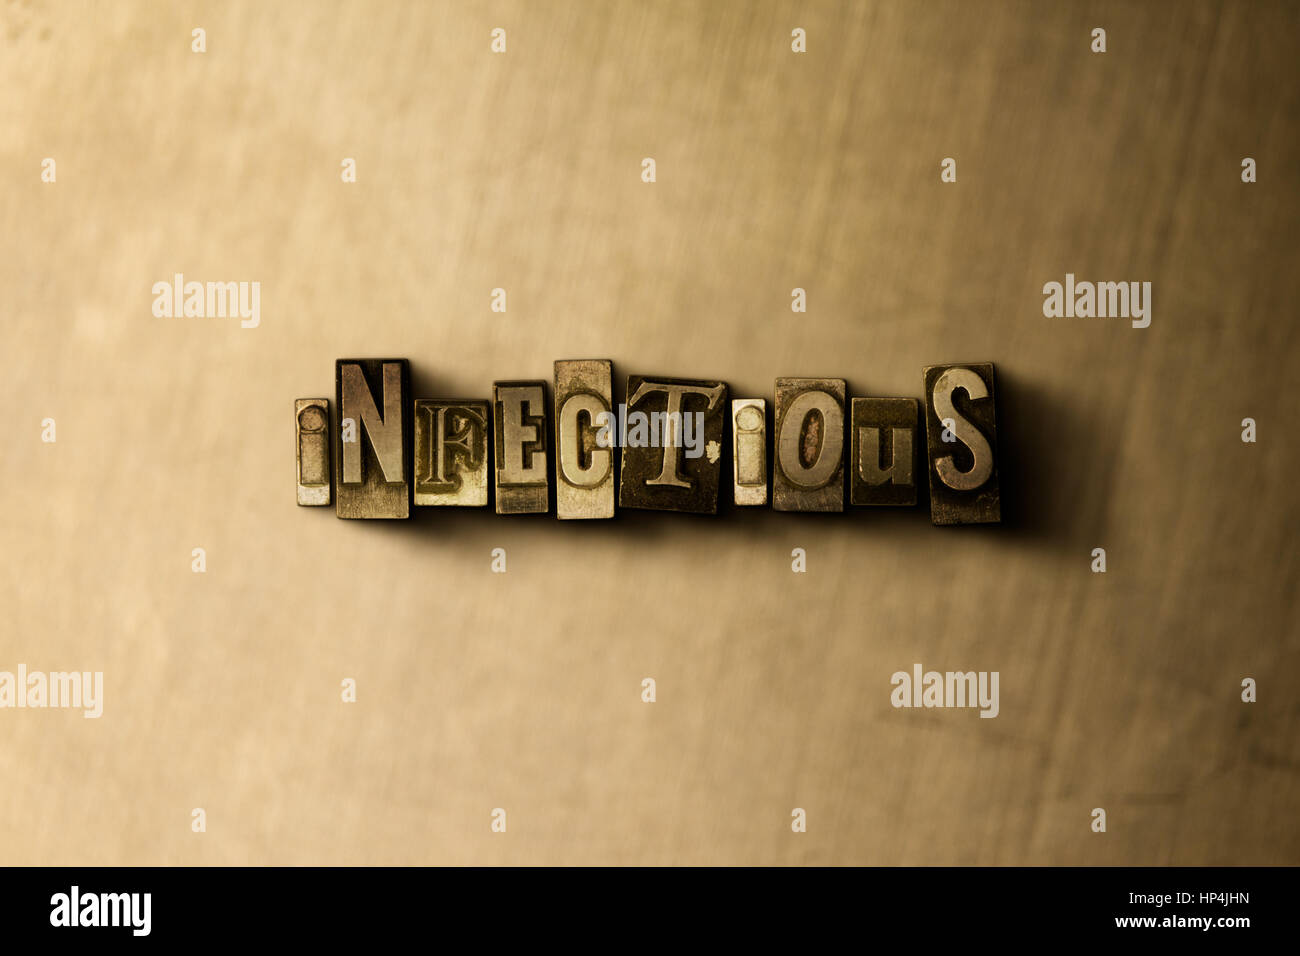 INFECTIOUS - close-up of grungy vintage typeset word on metal backdrop. Royalty free stock illustration.  Can be - Stock Image